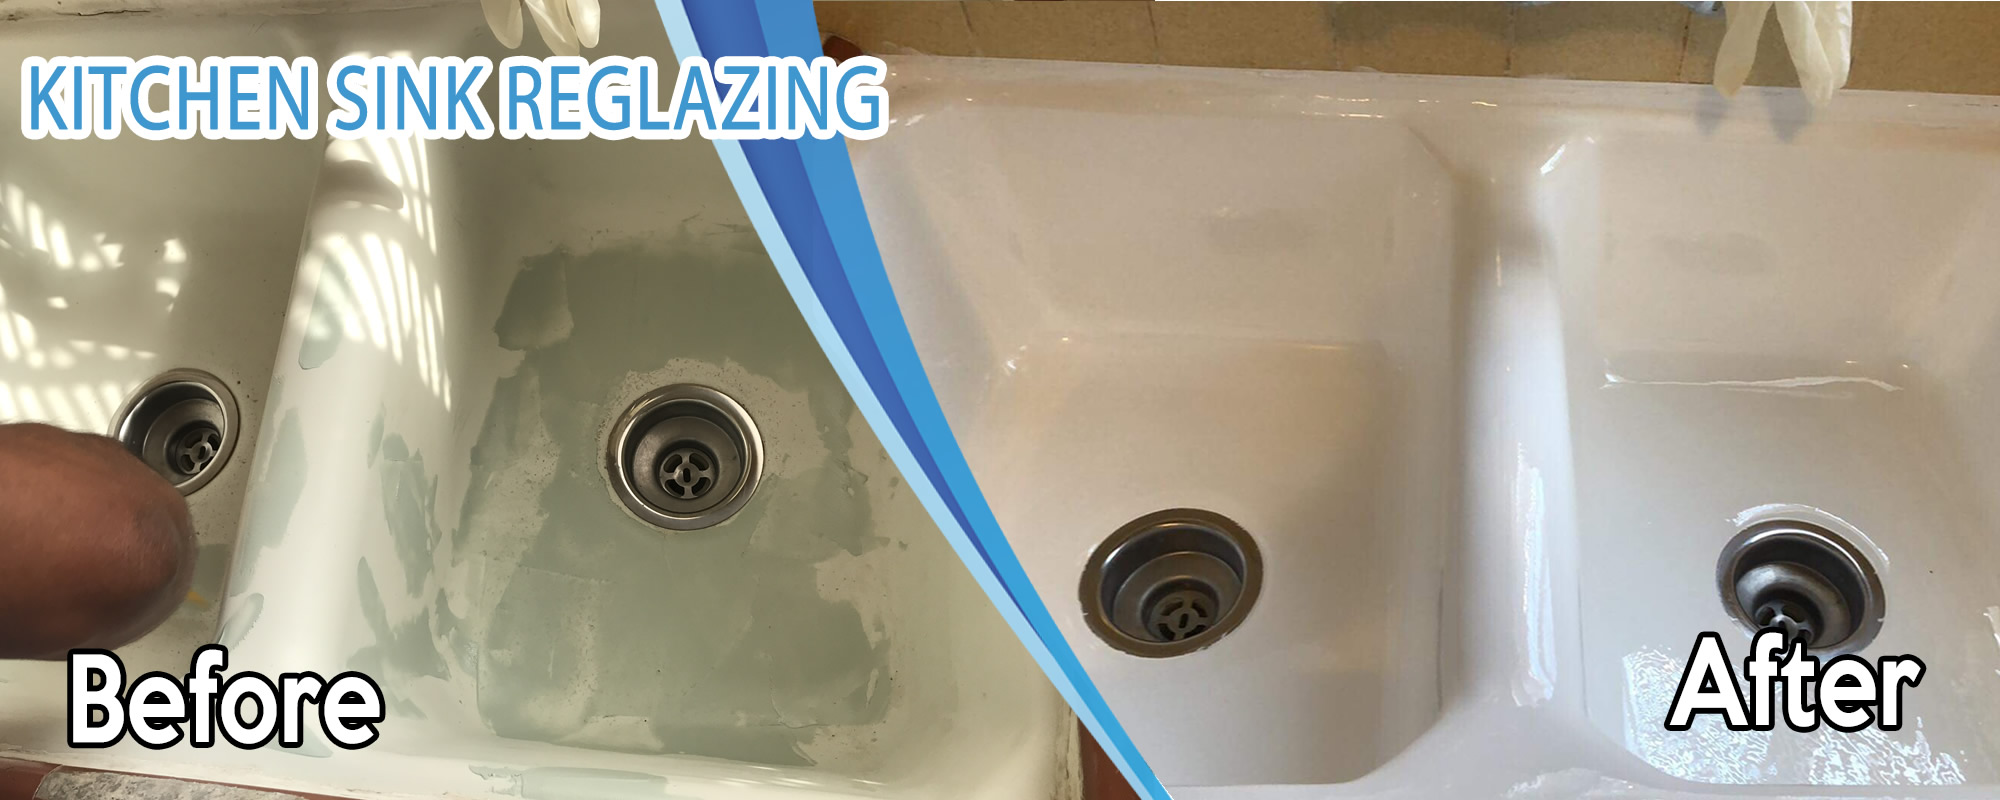 before and after a sink reglazing in pasadena california